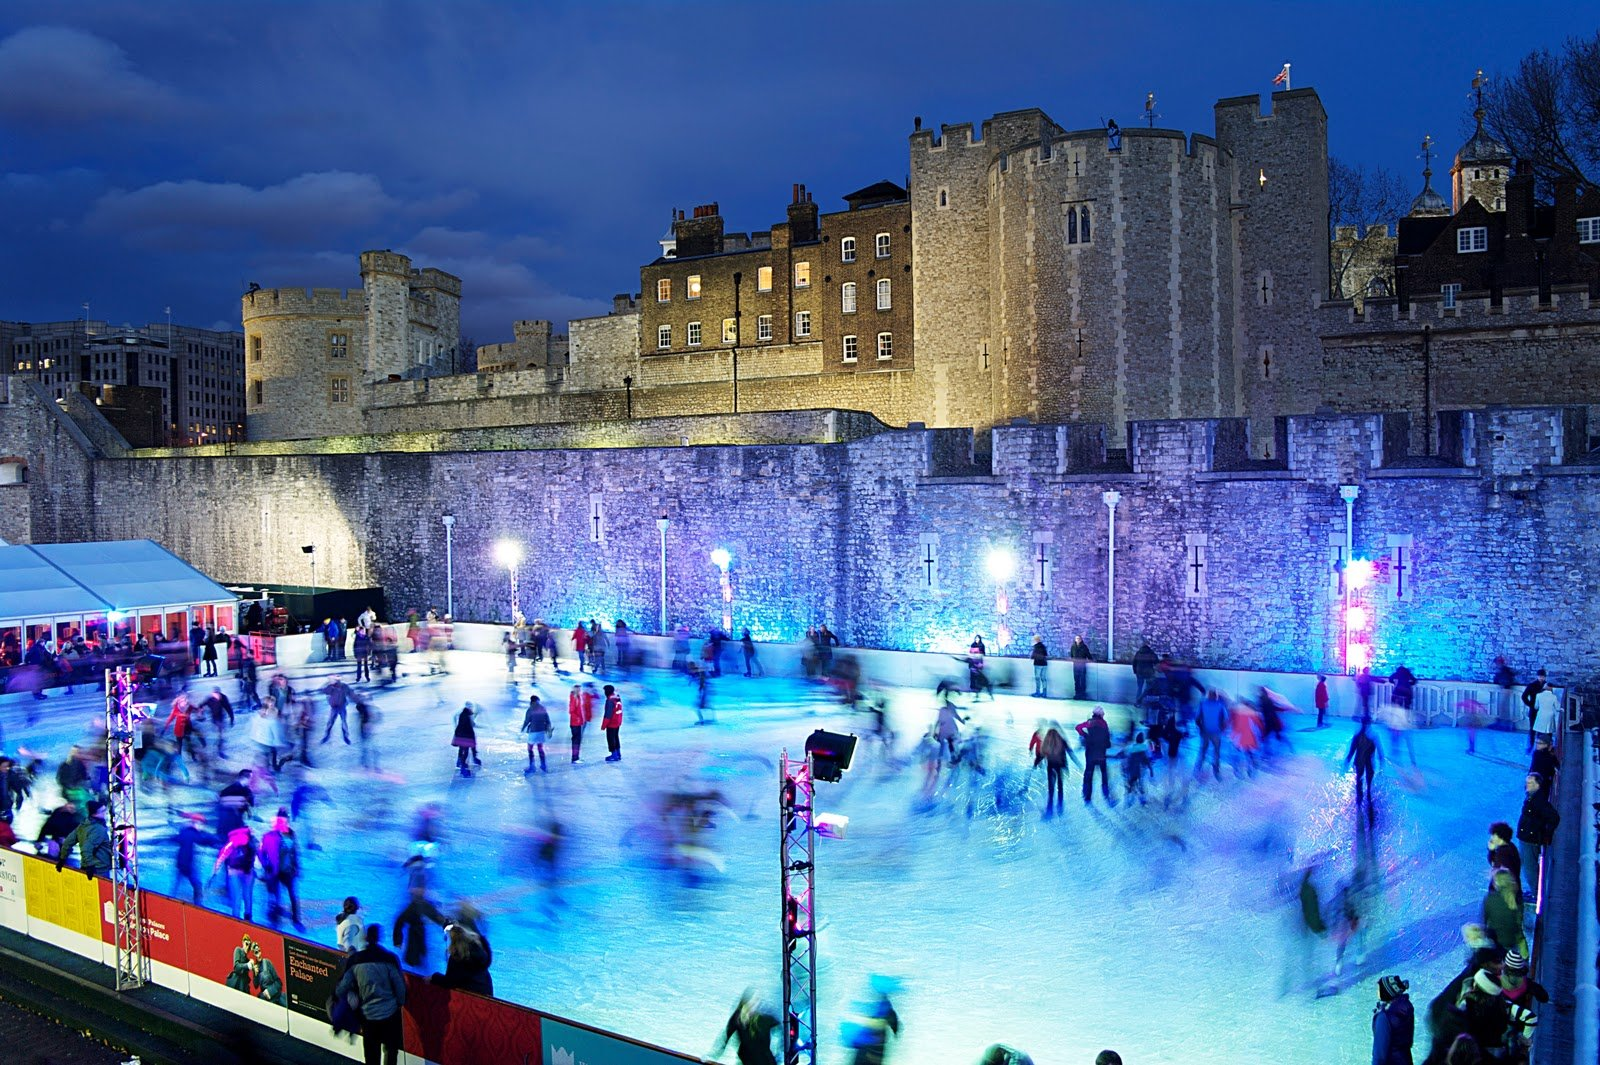 Christmas Ice Skating London.Top Places For Ice Skating Rinks In London Vlondoncity Co Uk